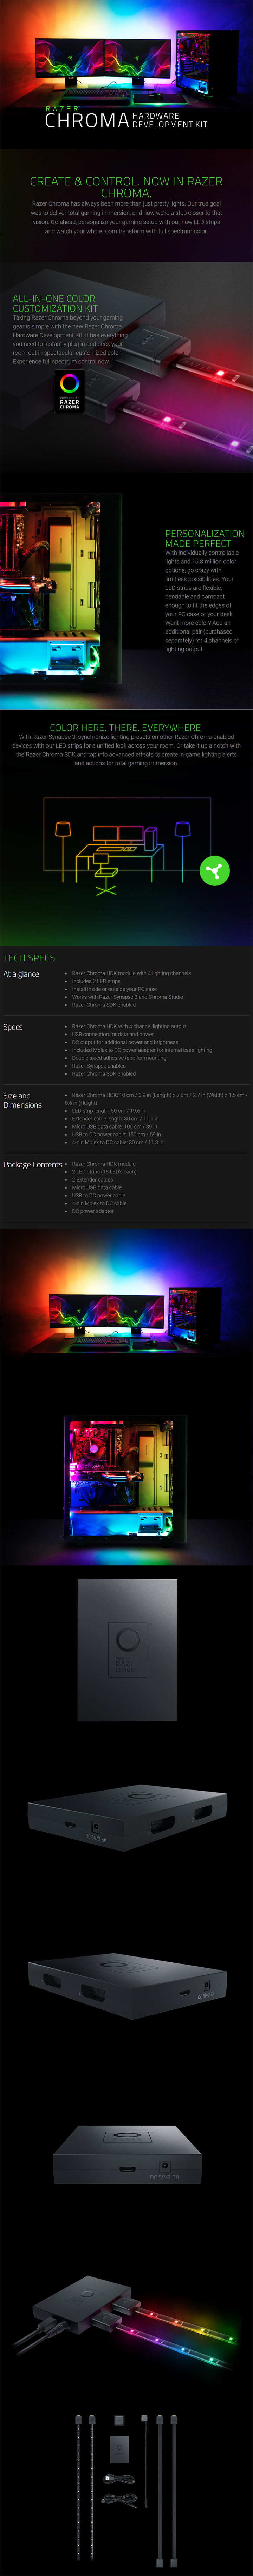 25-chroma-hardware-kit-5.jpg